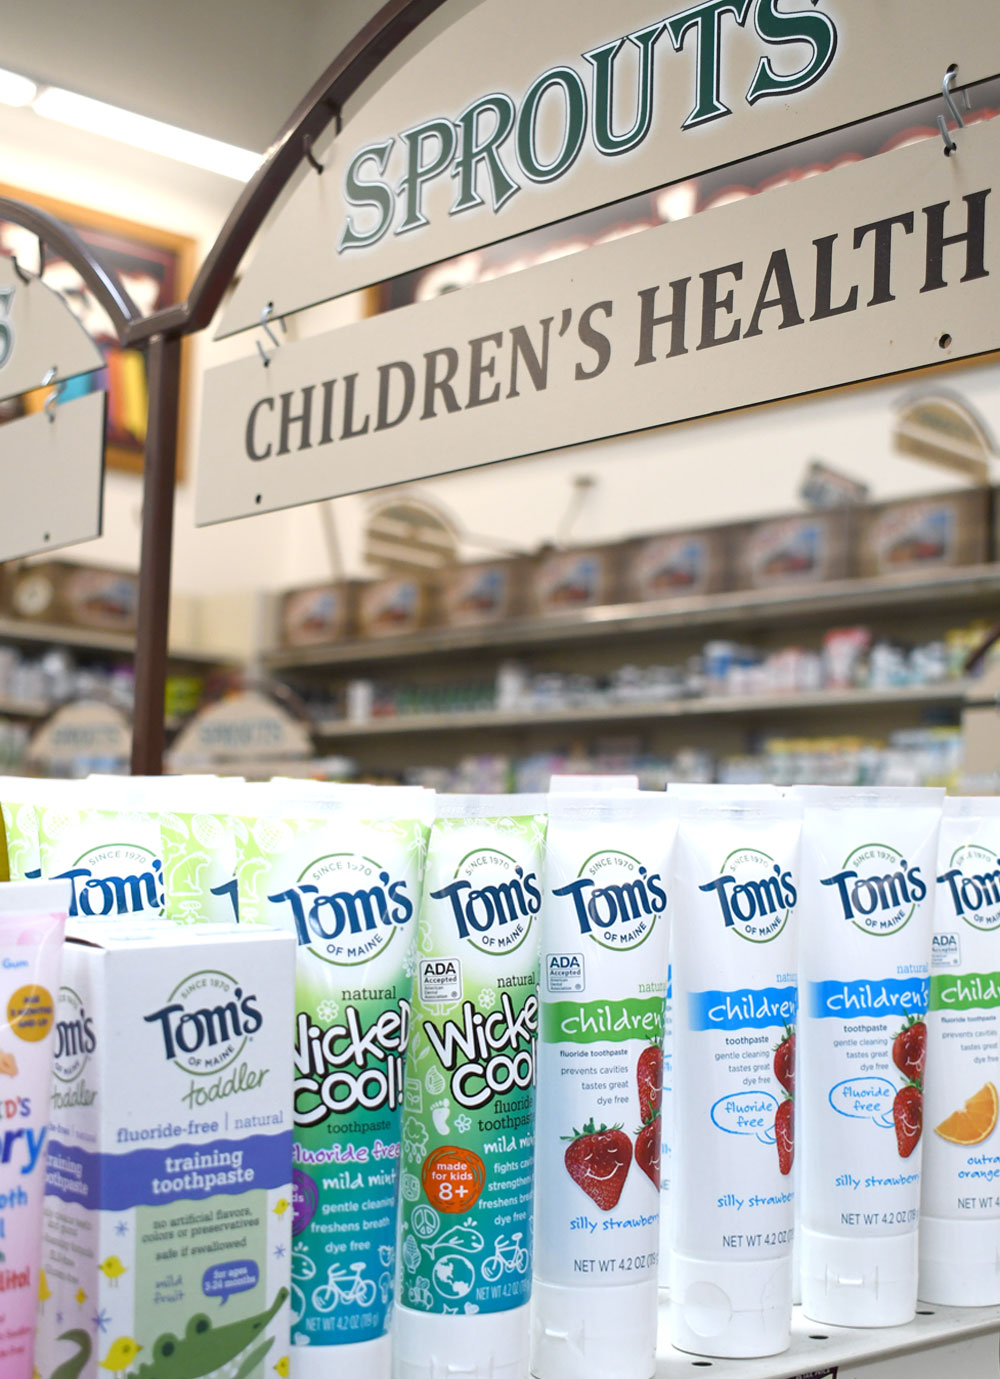 Sprouts Farmer's Market Tom's of Maine Wicked Cool! fluoride toothpaste